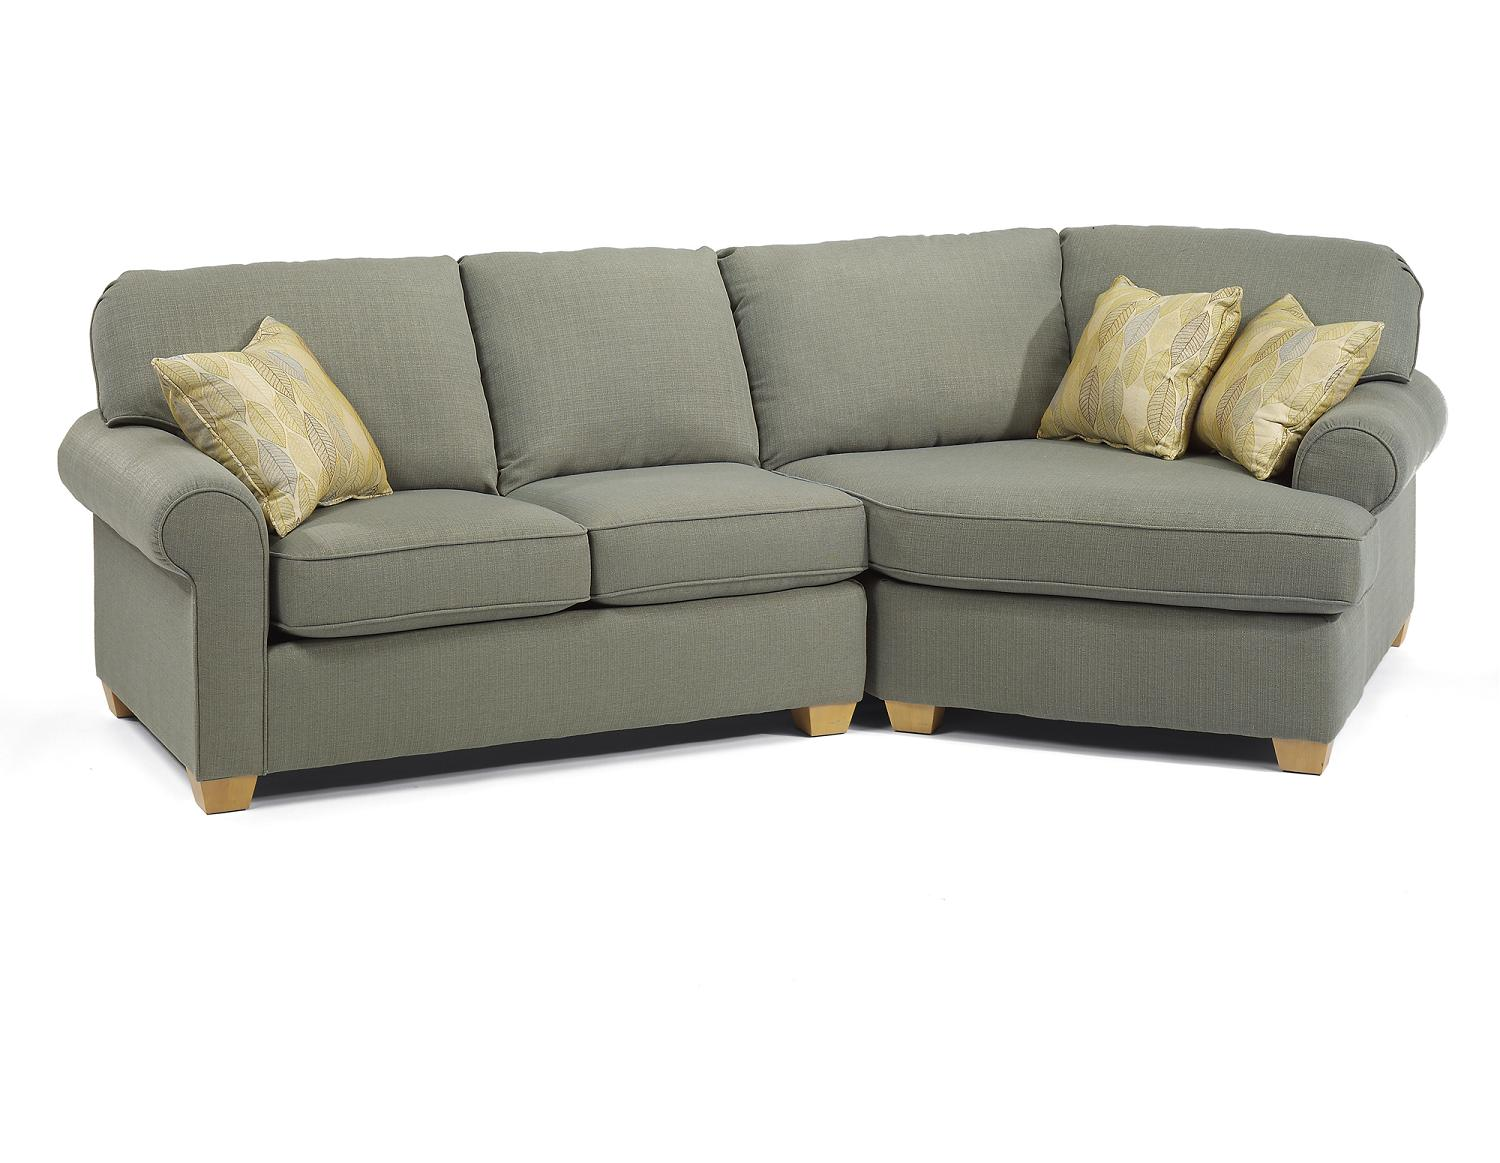 cheap sectional sofas under 100